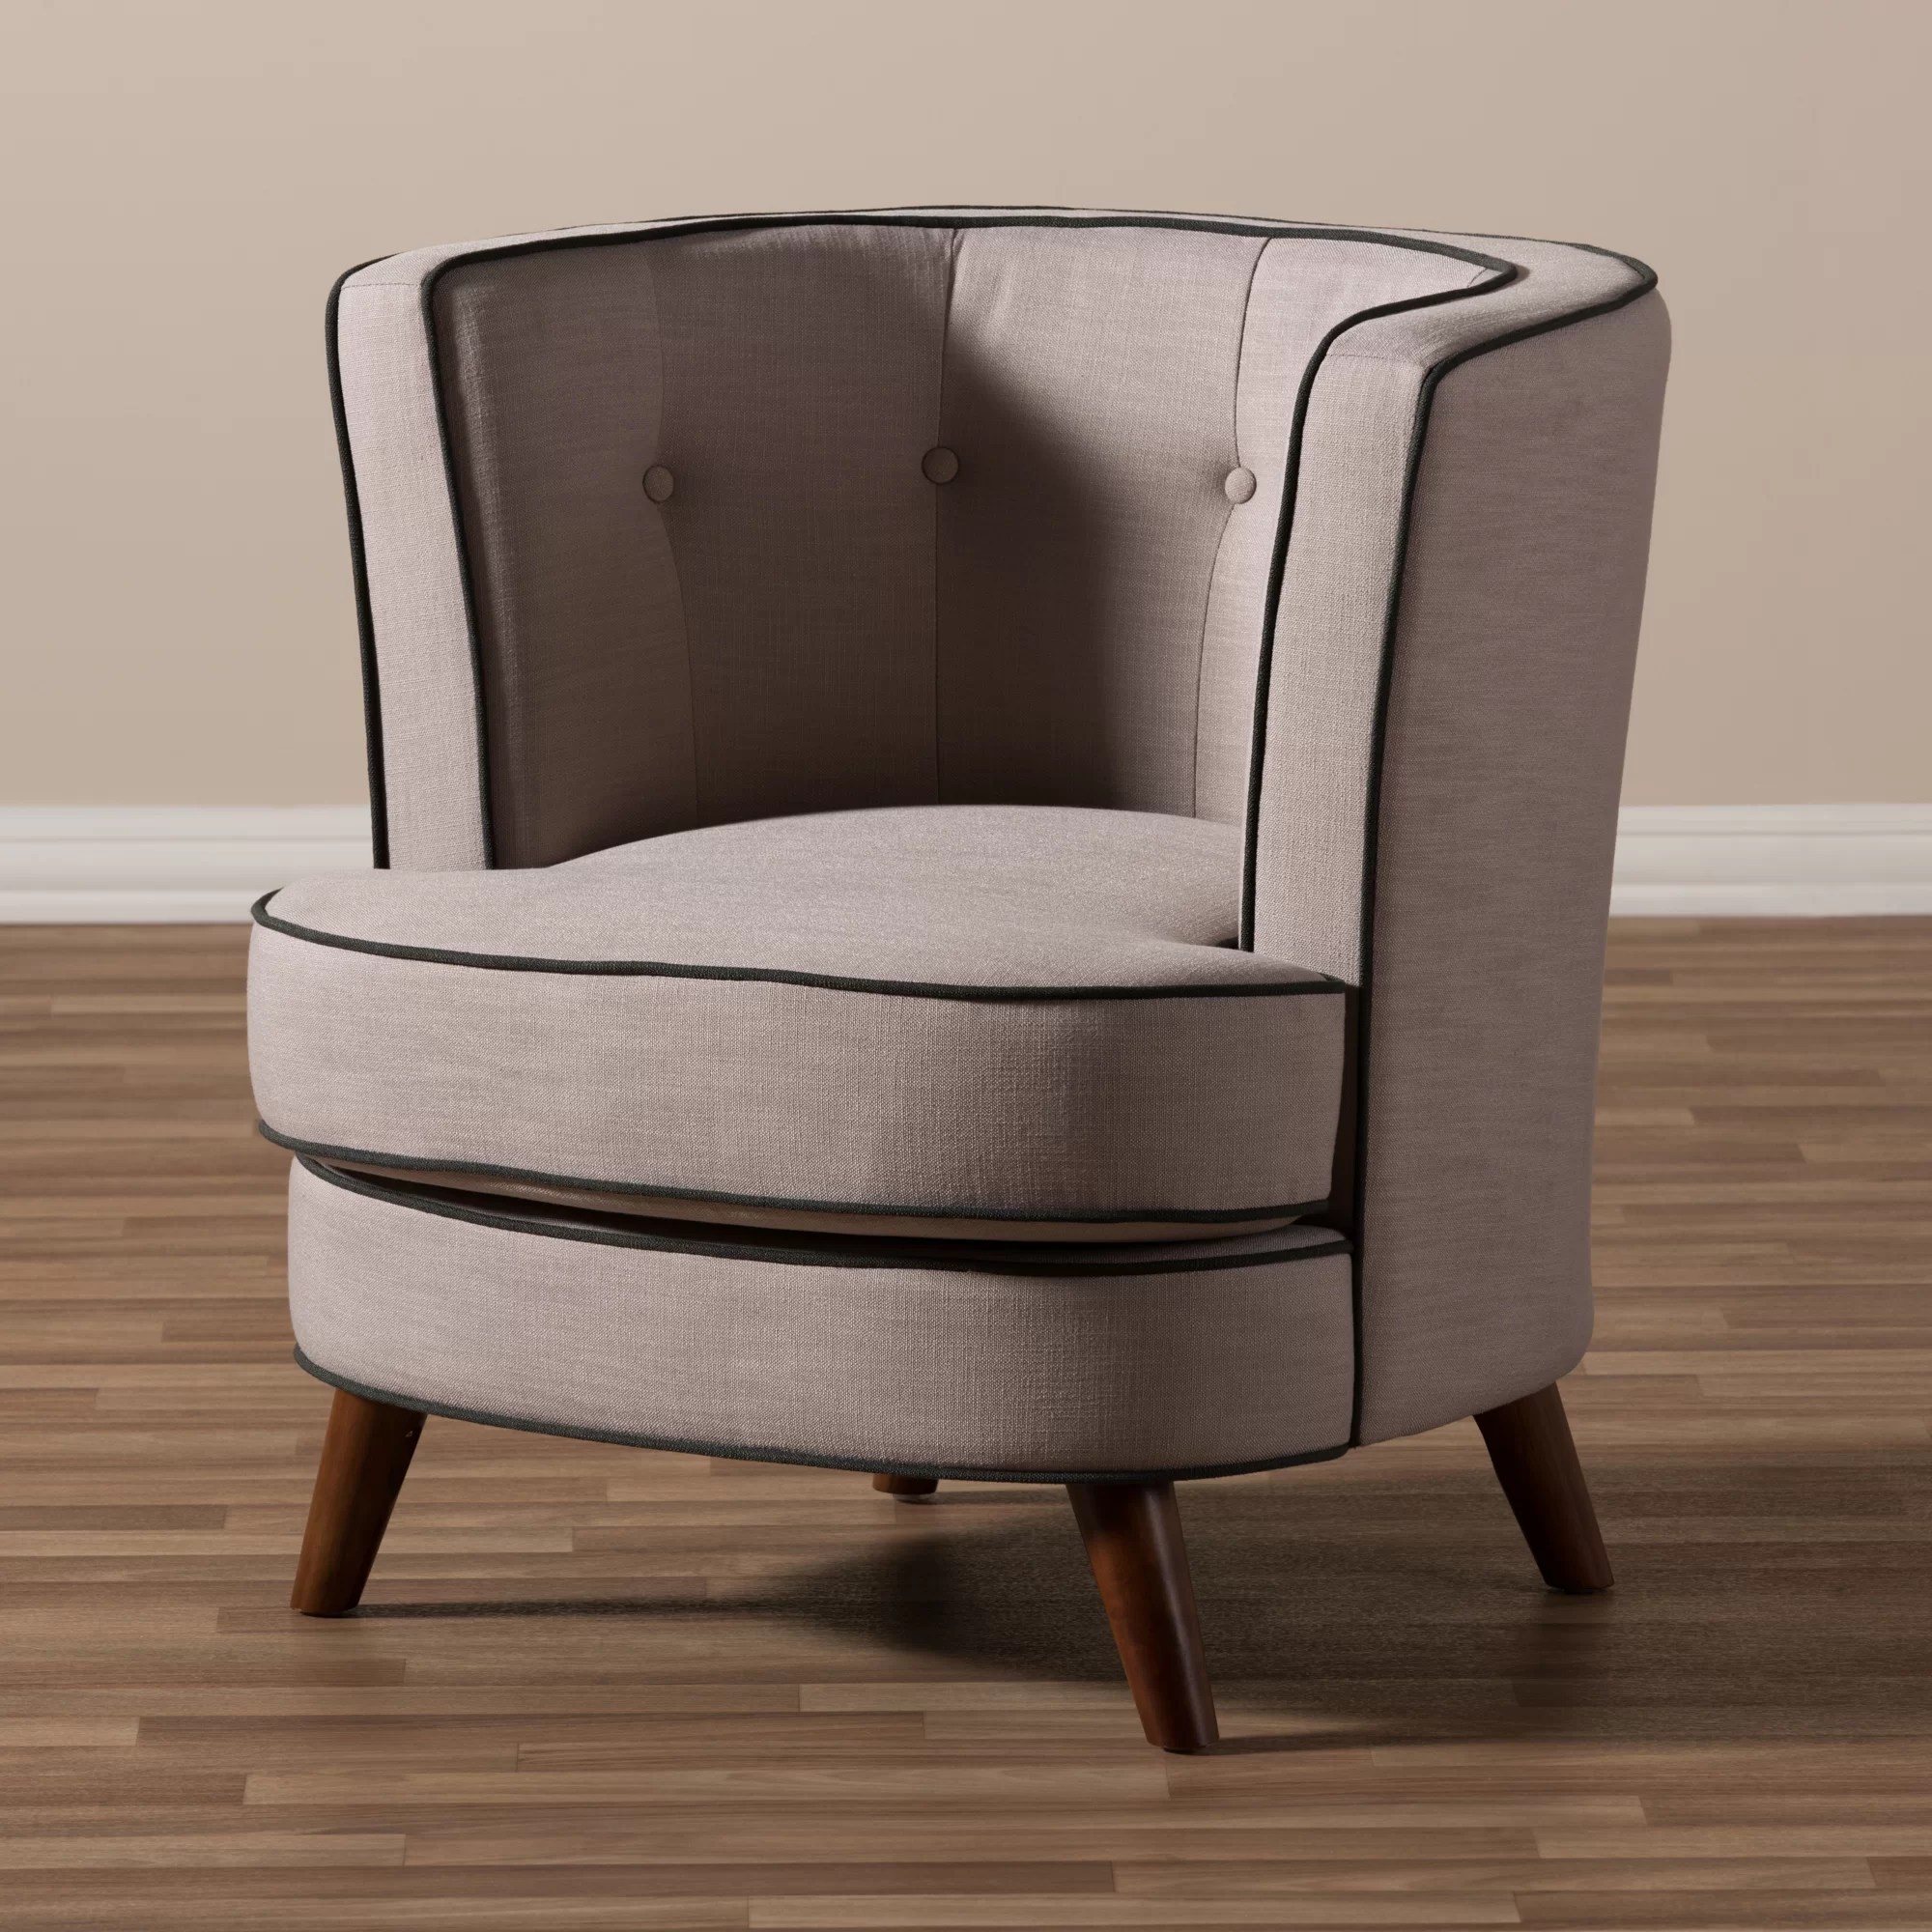 Upholstered Club Chair Wholesale Interiors Baxton Studio Michele Upholstered Club